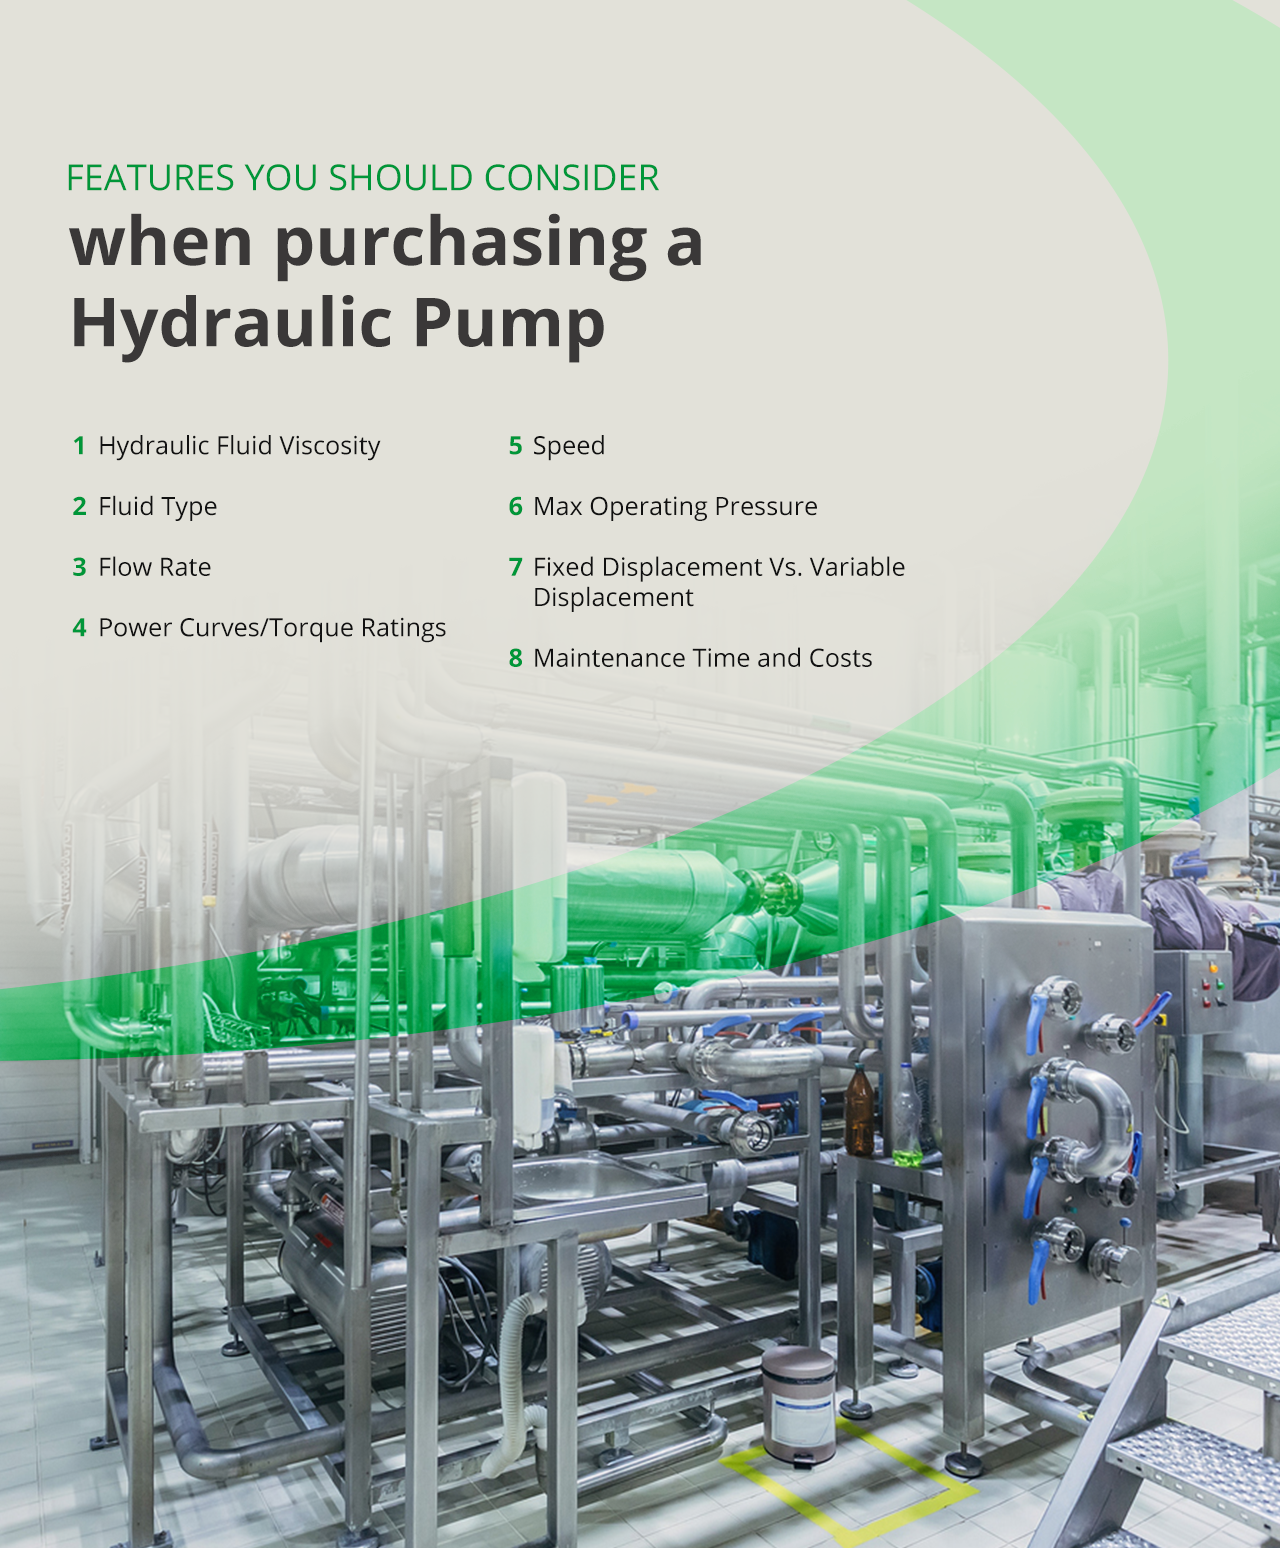 Features you should consider when purchasing a hydraulic pump